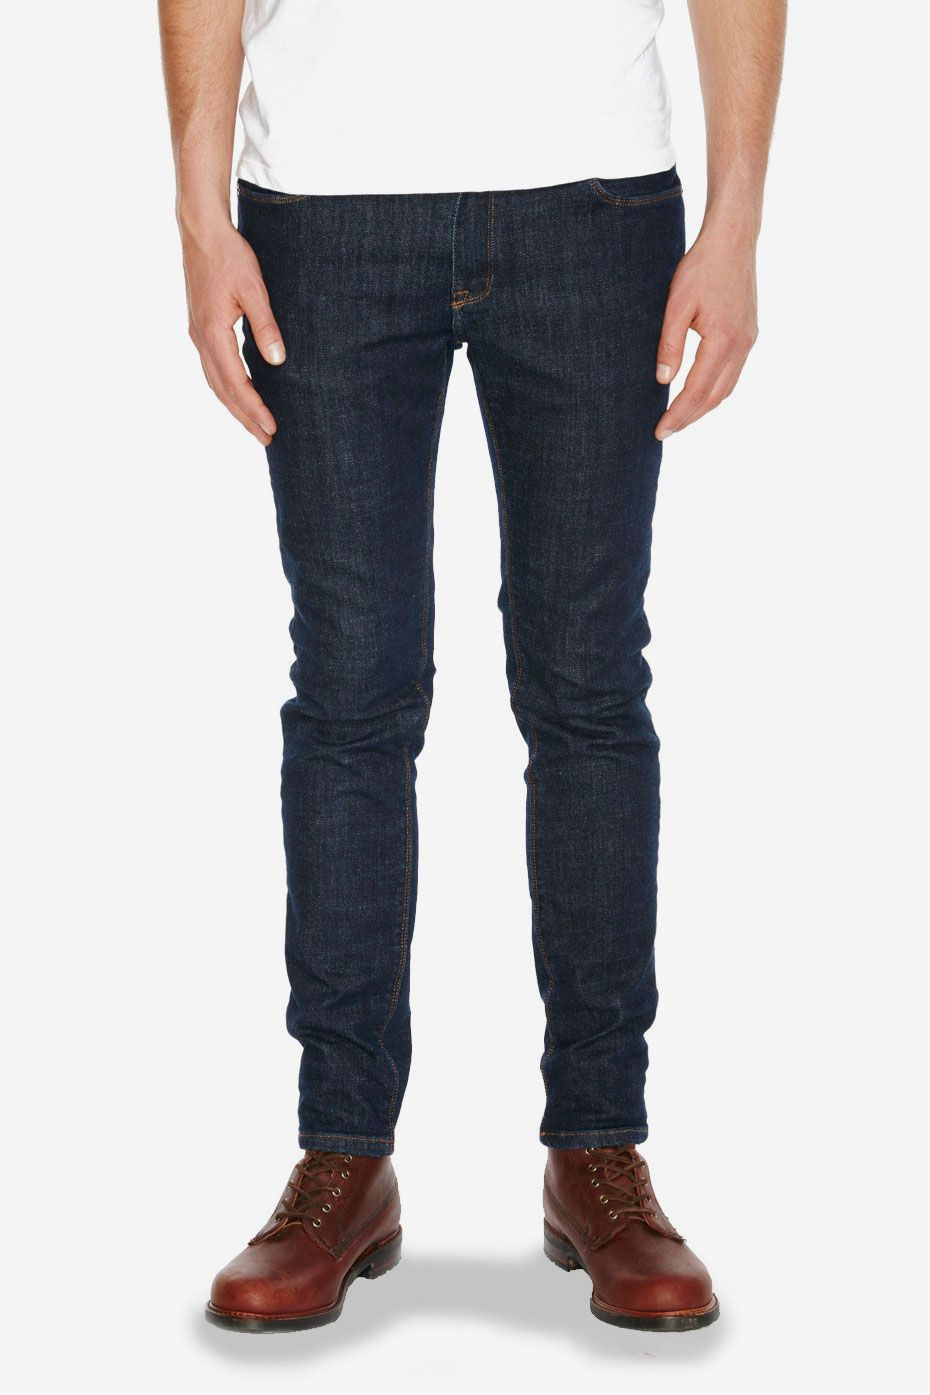 6469dc7e Mott & Bow Wooster Skinny Fit Jeans